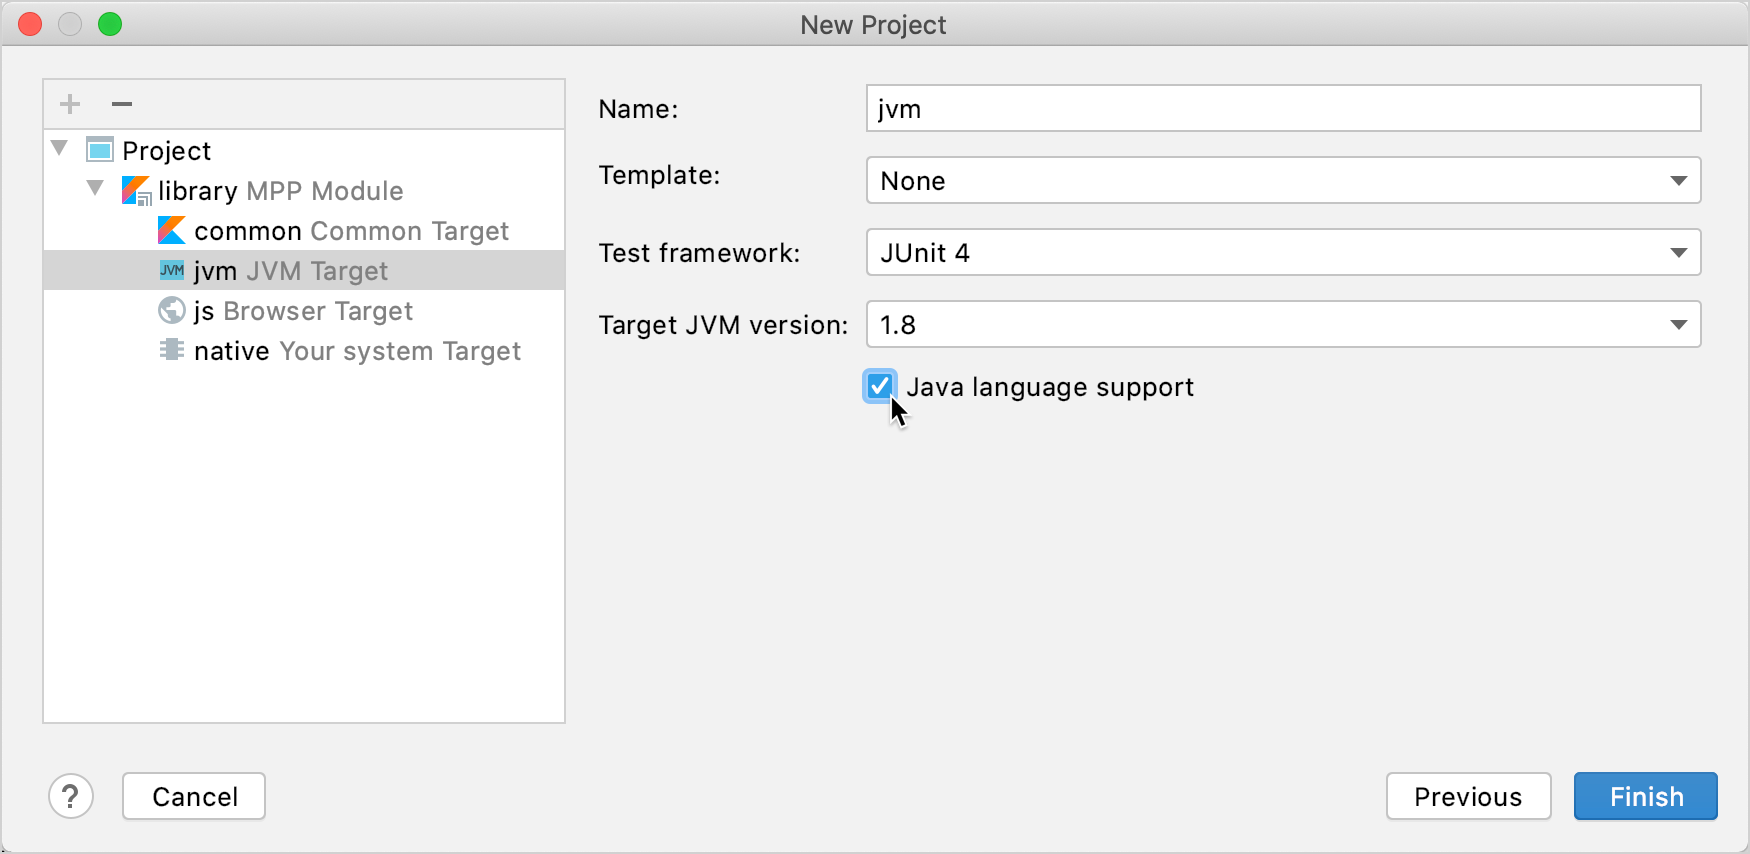 Enable Java language support